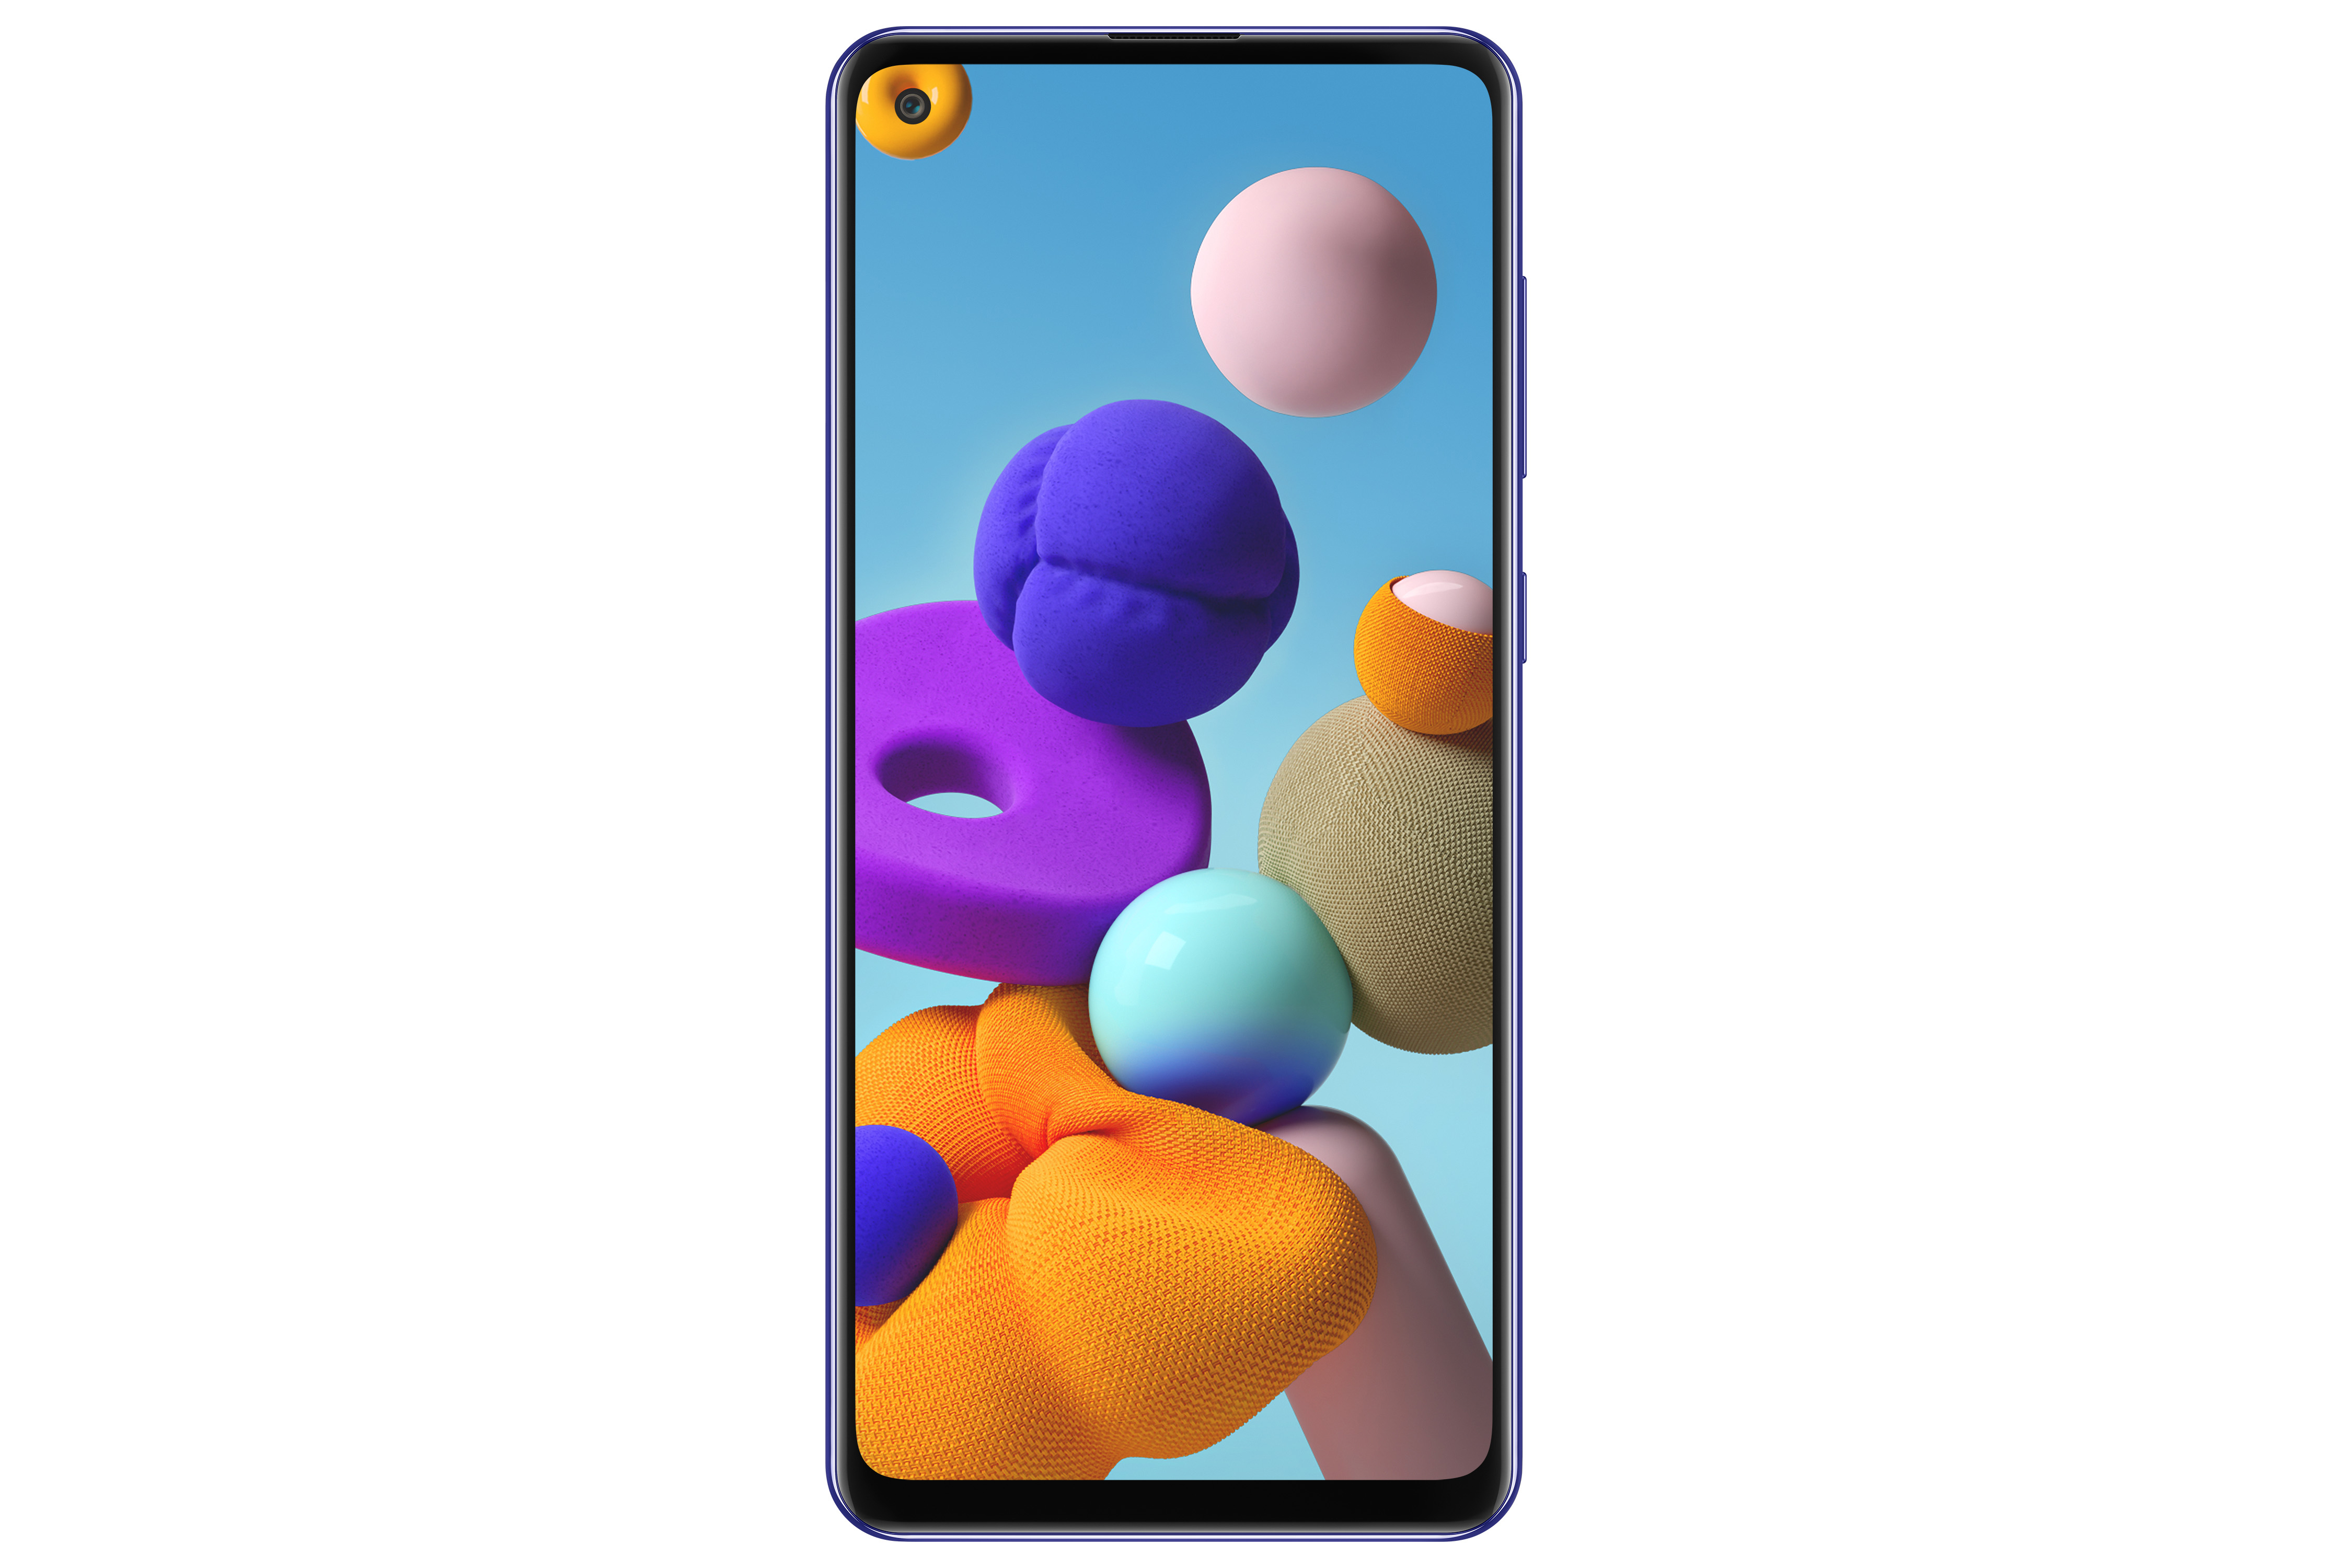 Samsung Adds The New Galaxy A21s To The Galaxy A Family Samsung Newsroom U K